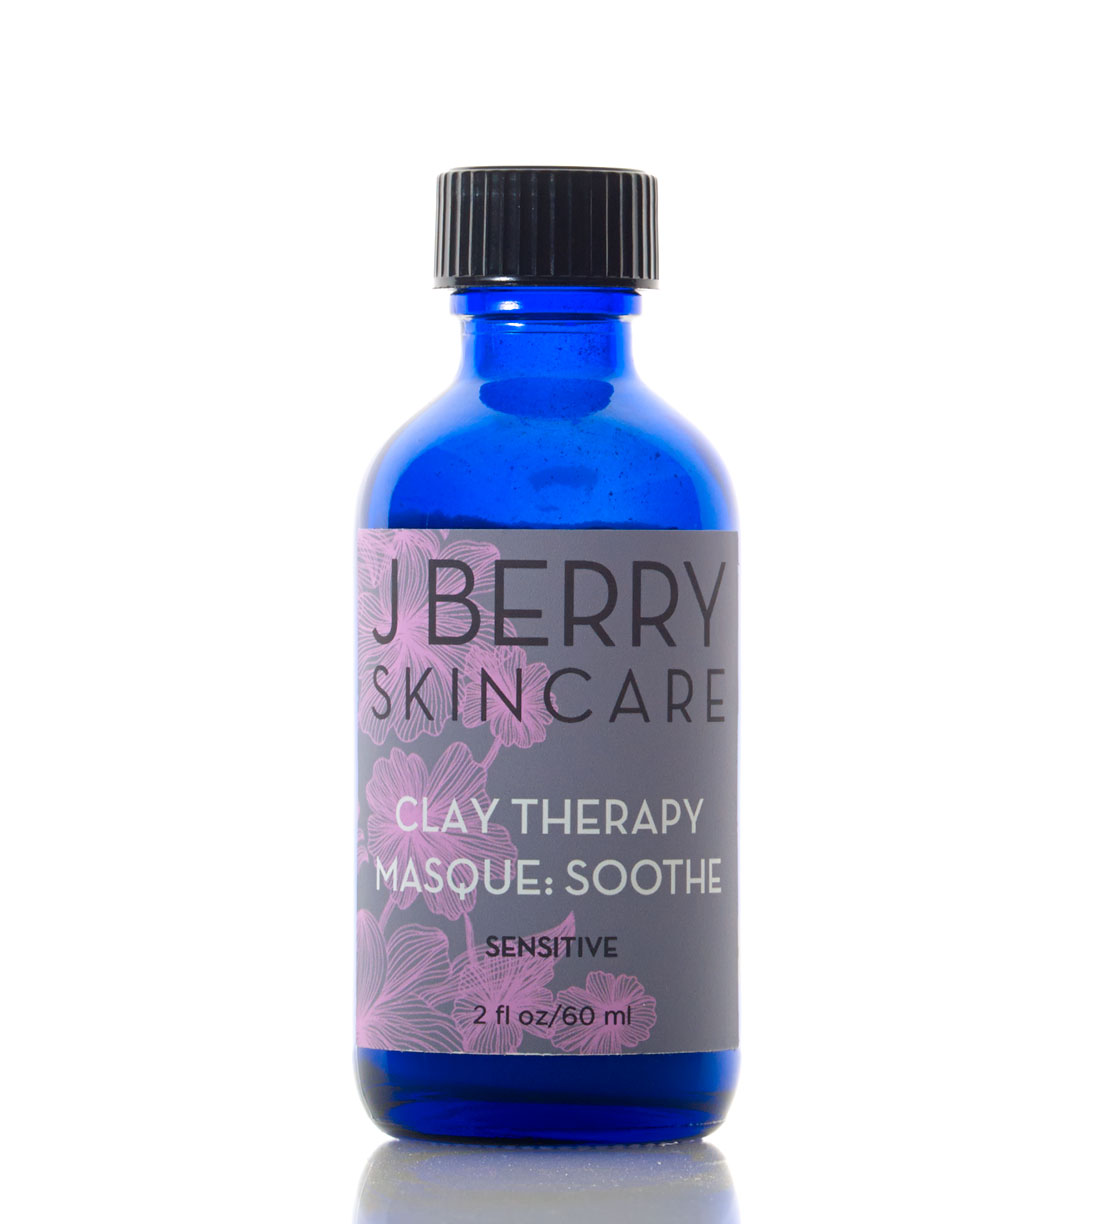 Clay Therapy Masque: Soothe